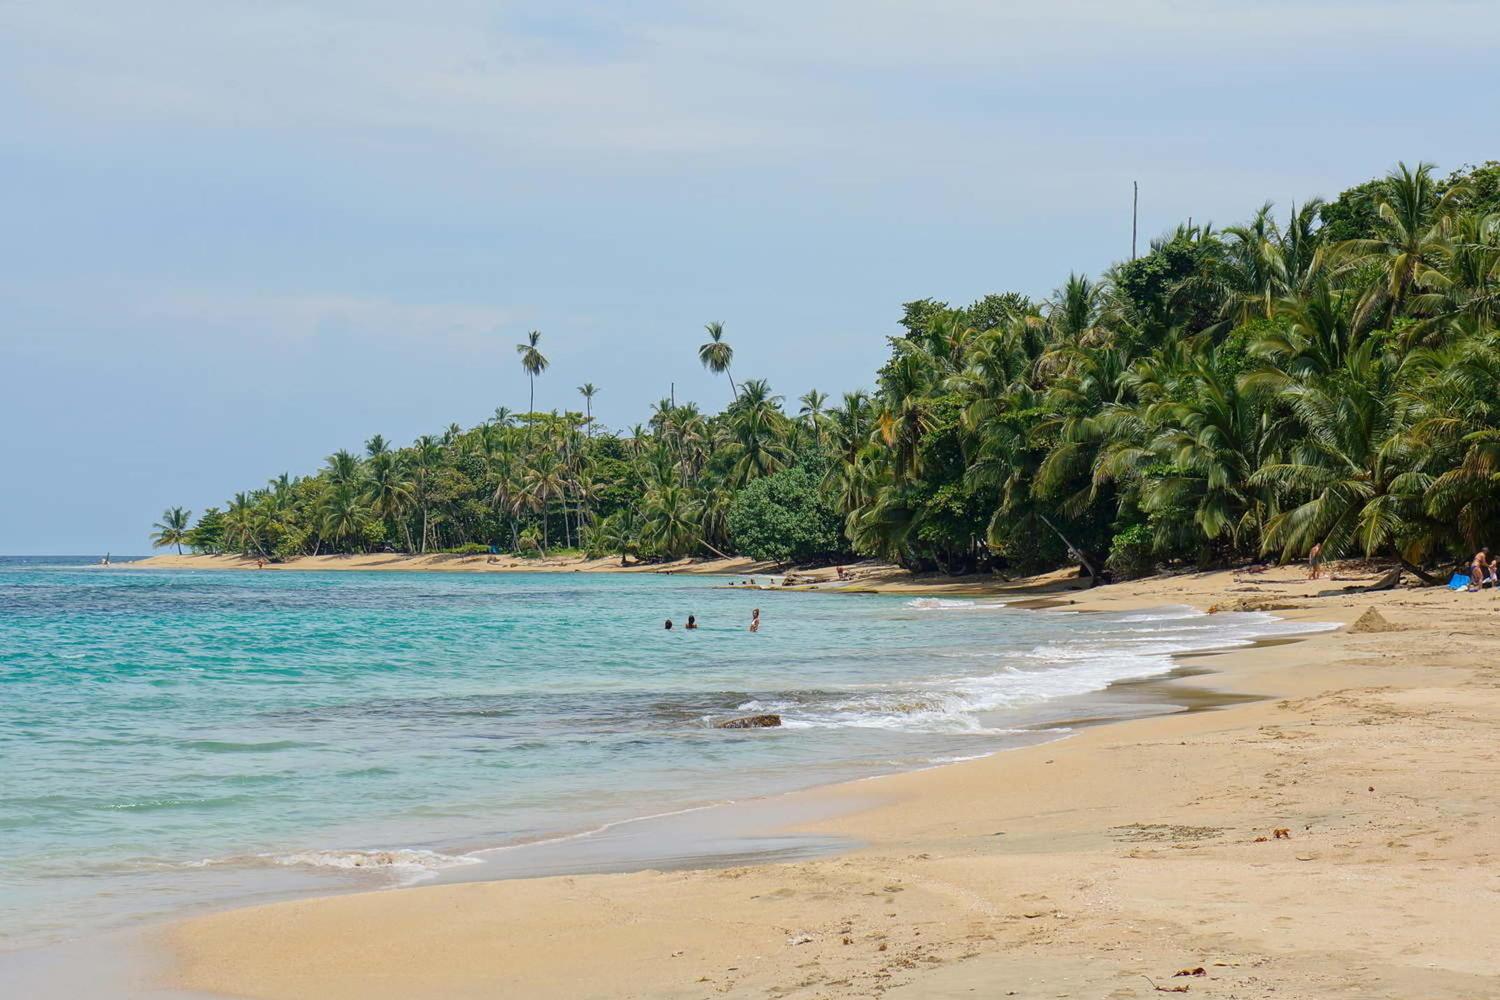 Beach with beautiful tropical vegetation on the Caribbean coast of Costa Rica's Punta Uva